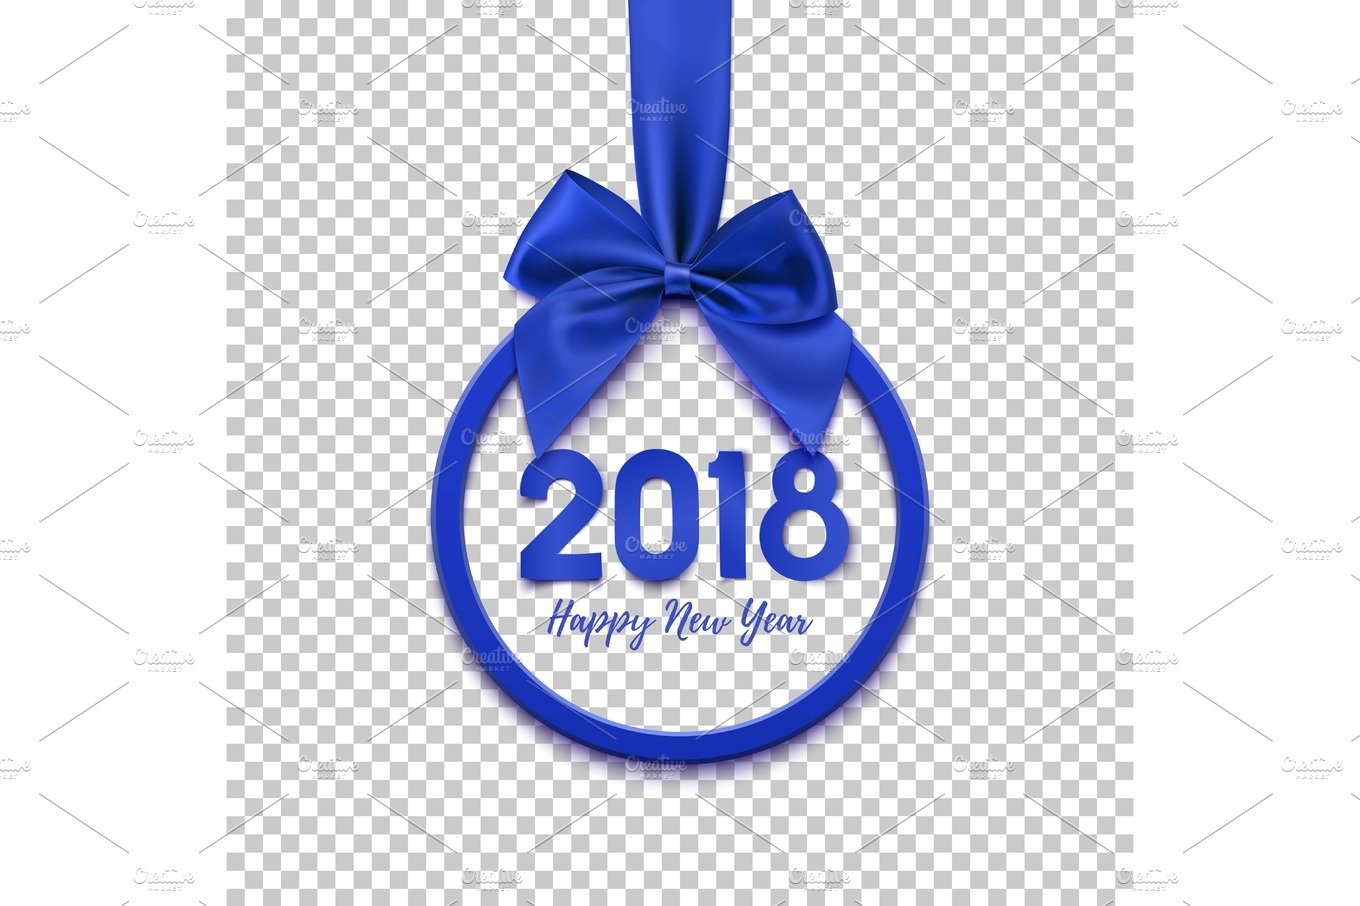 happy new year 2018 round banner with blue